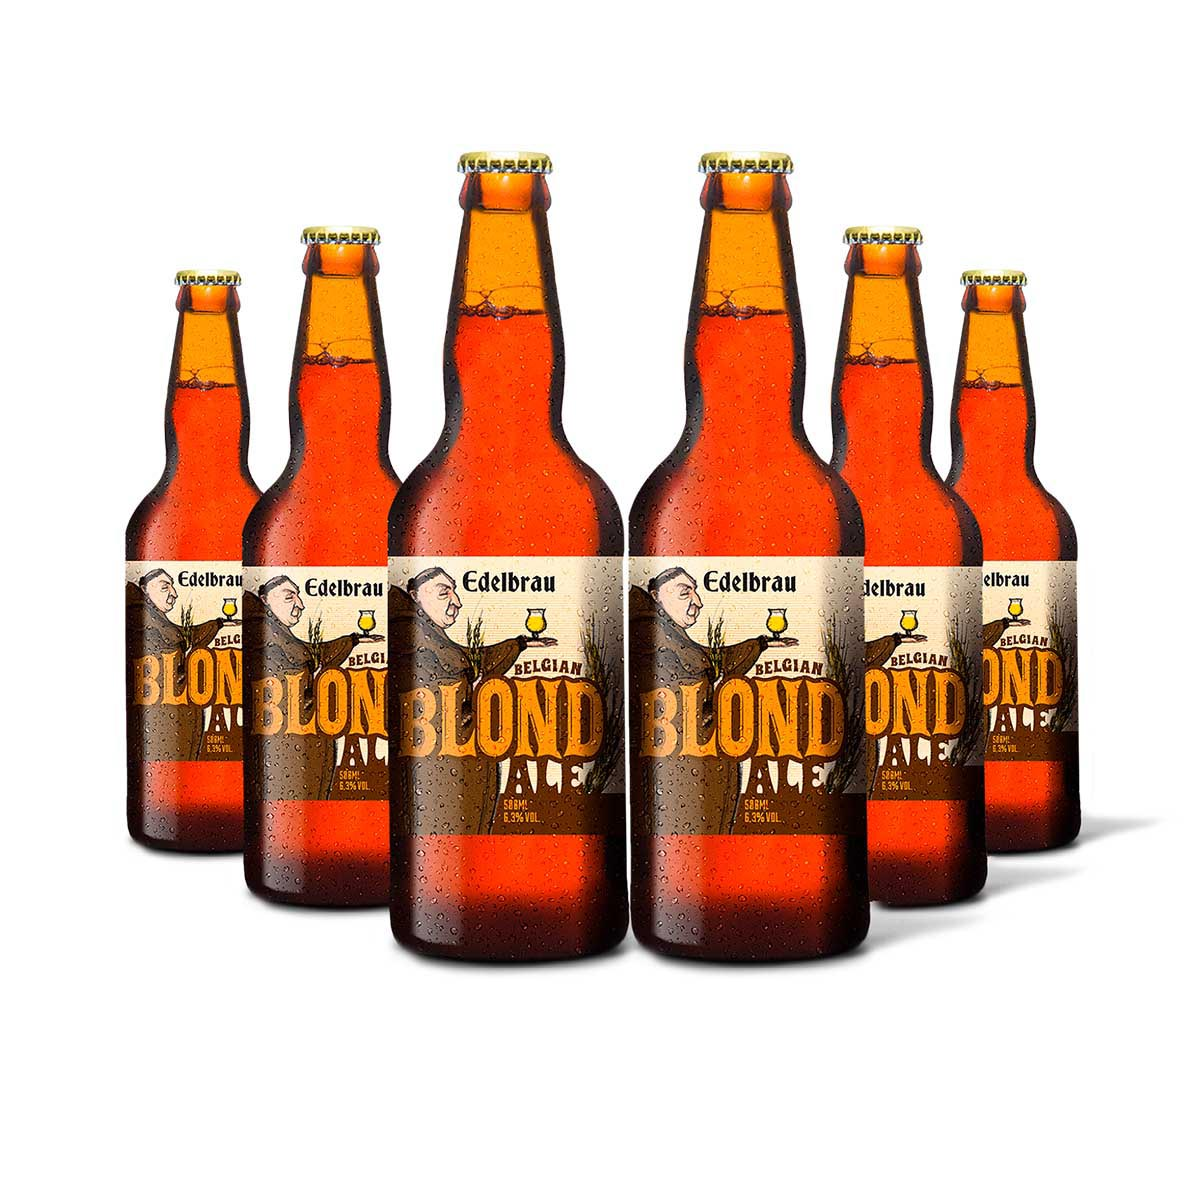 Pack Edelbrau Blond Ale 6 cervejas 500ml